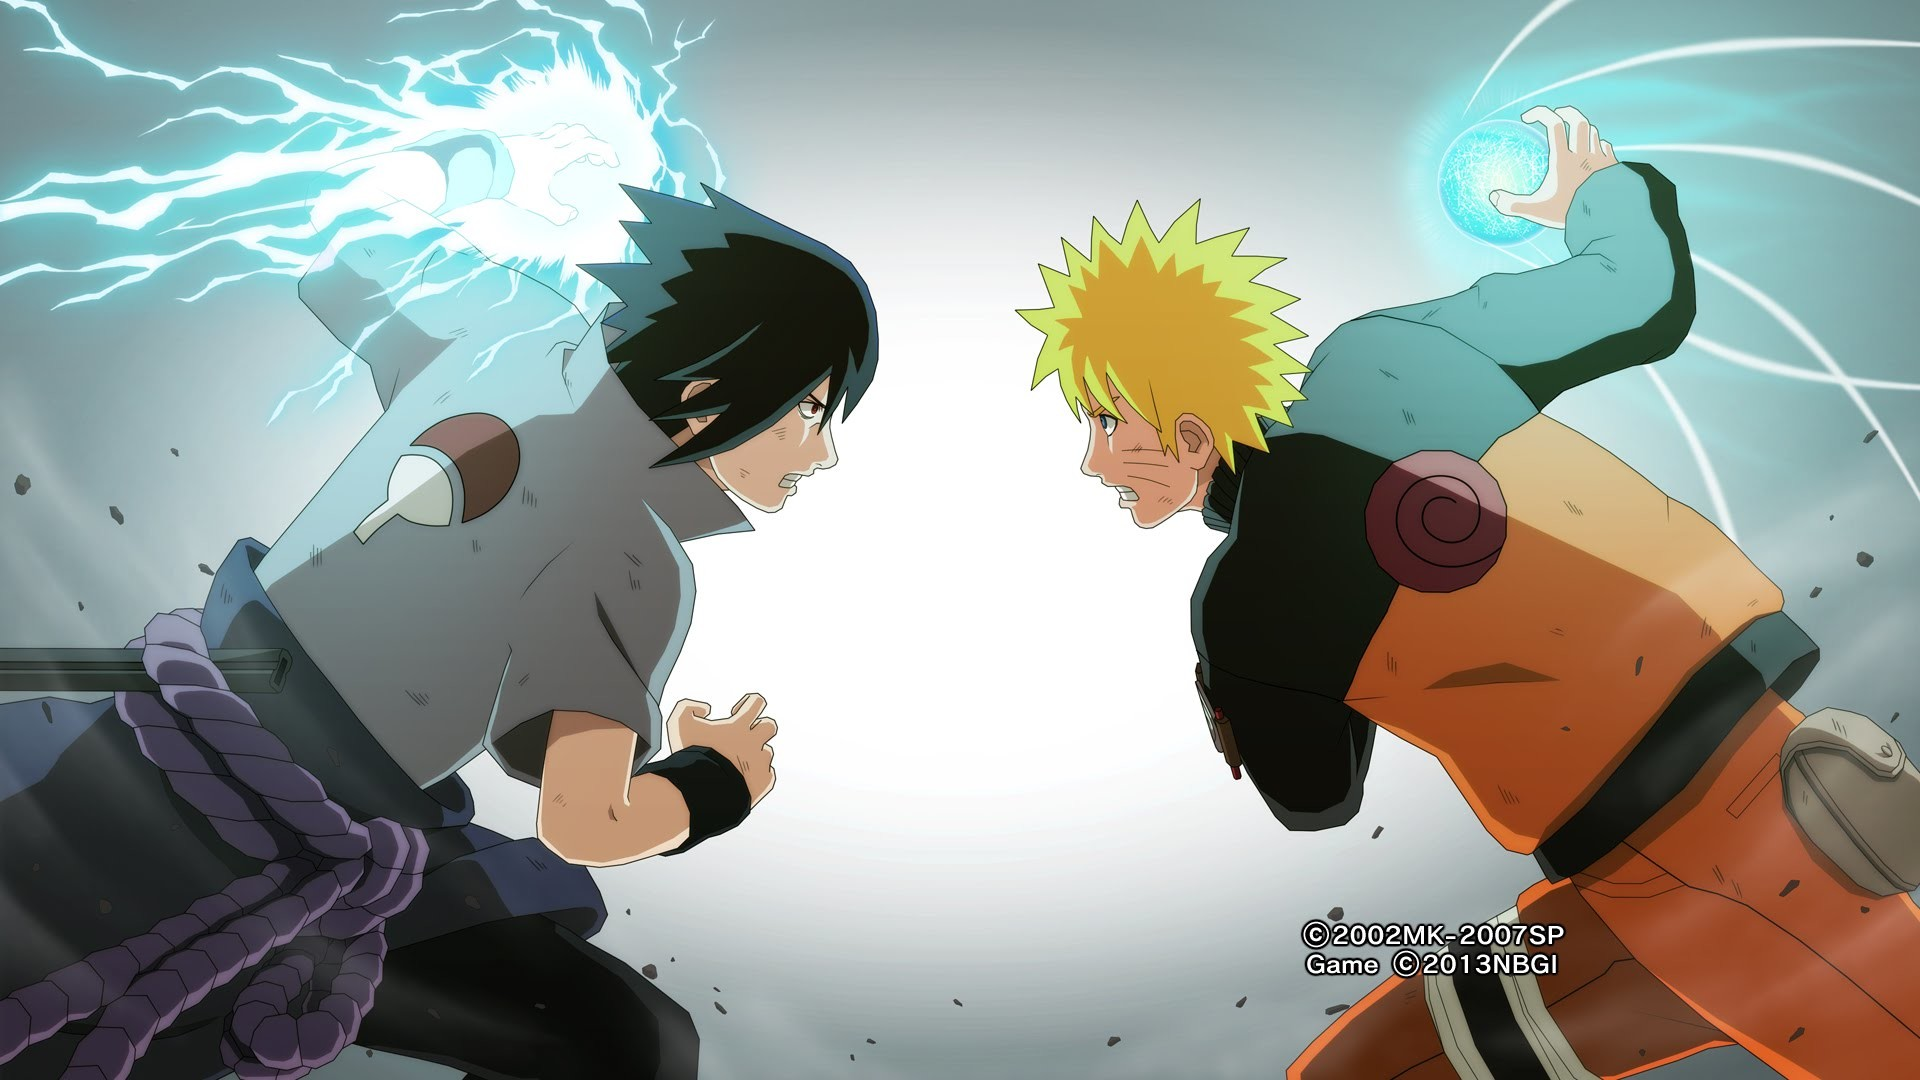 1920x1080 Naruto vs Sasuke the final battle 3D!!! (or 2d if u prefer that)